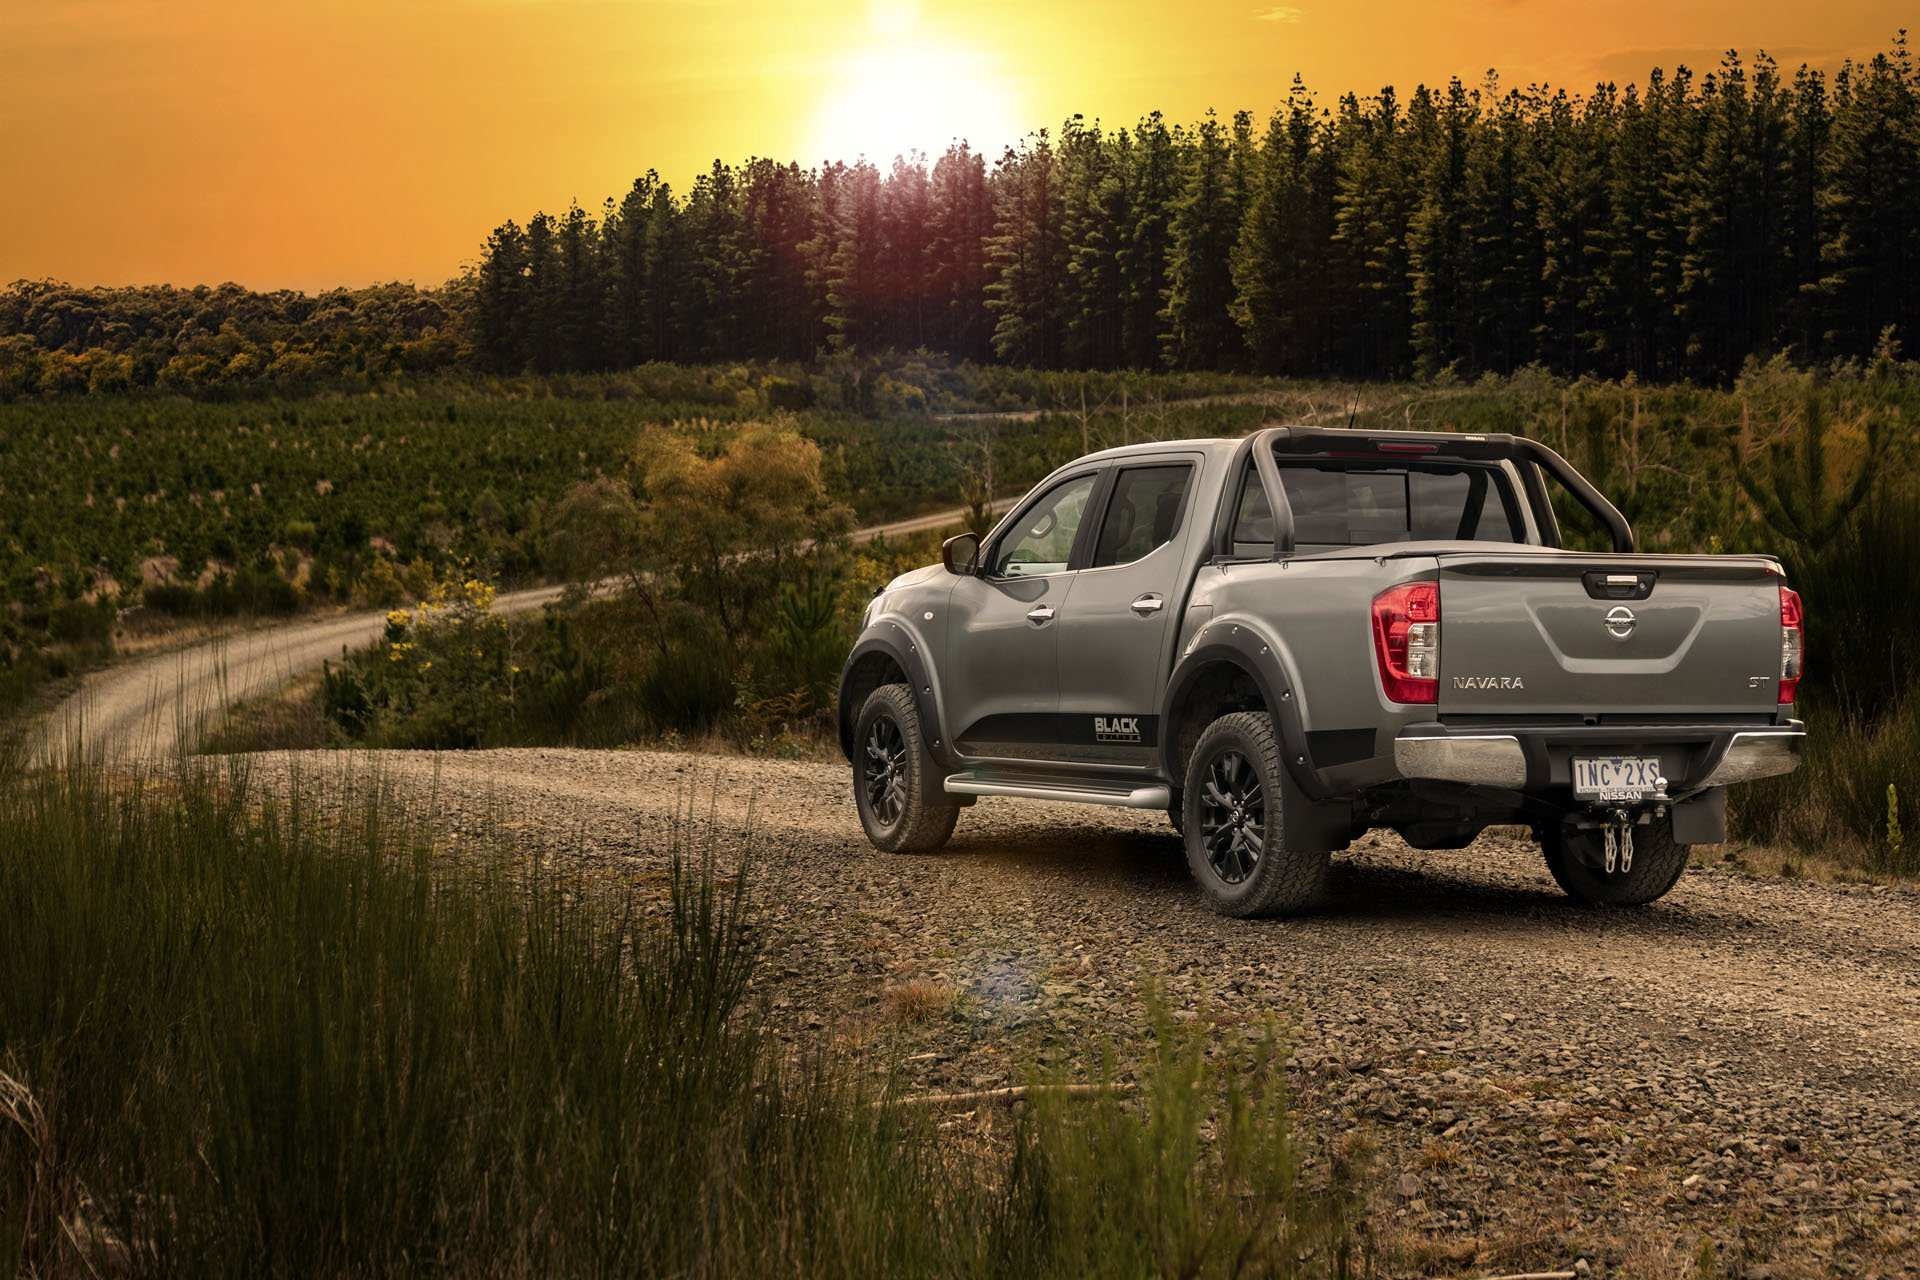 2020 Nissan Frontier Review.62 The 2020 Nissan Frontier Pictures Auto Review